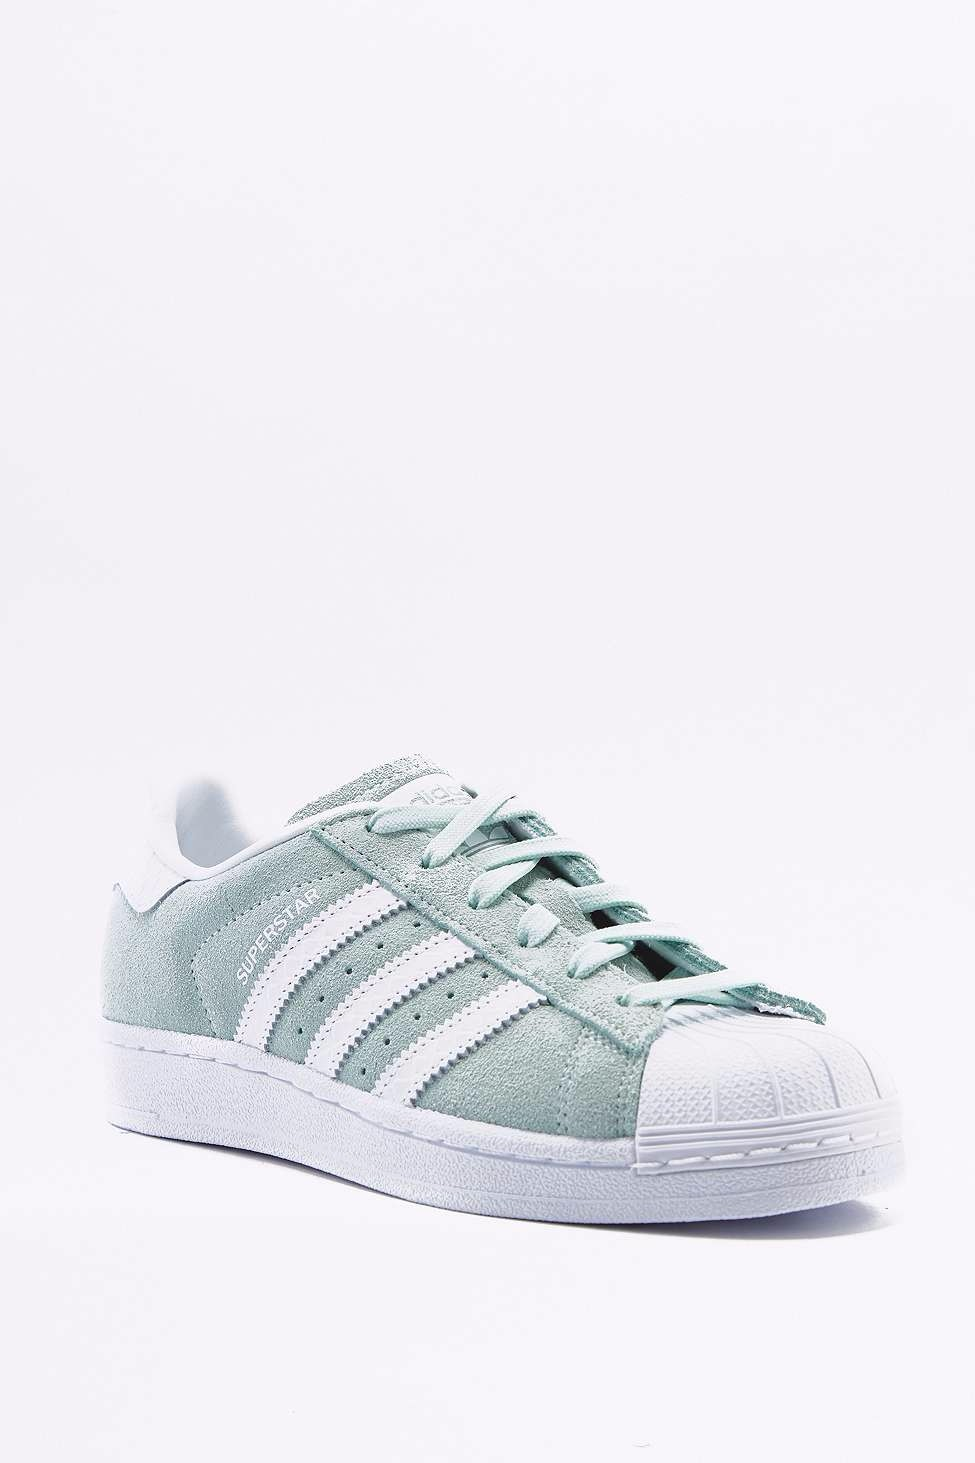 adidas Originals Superstar 运动鞋